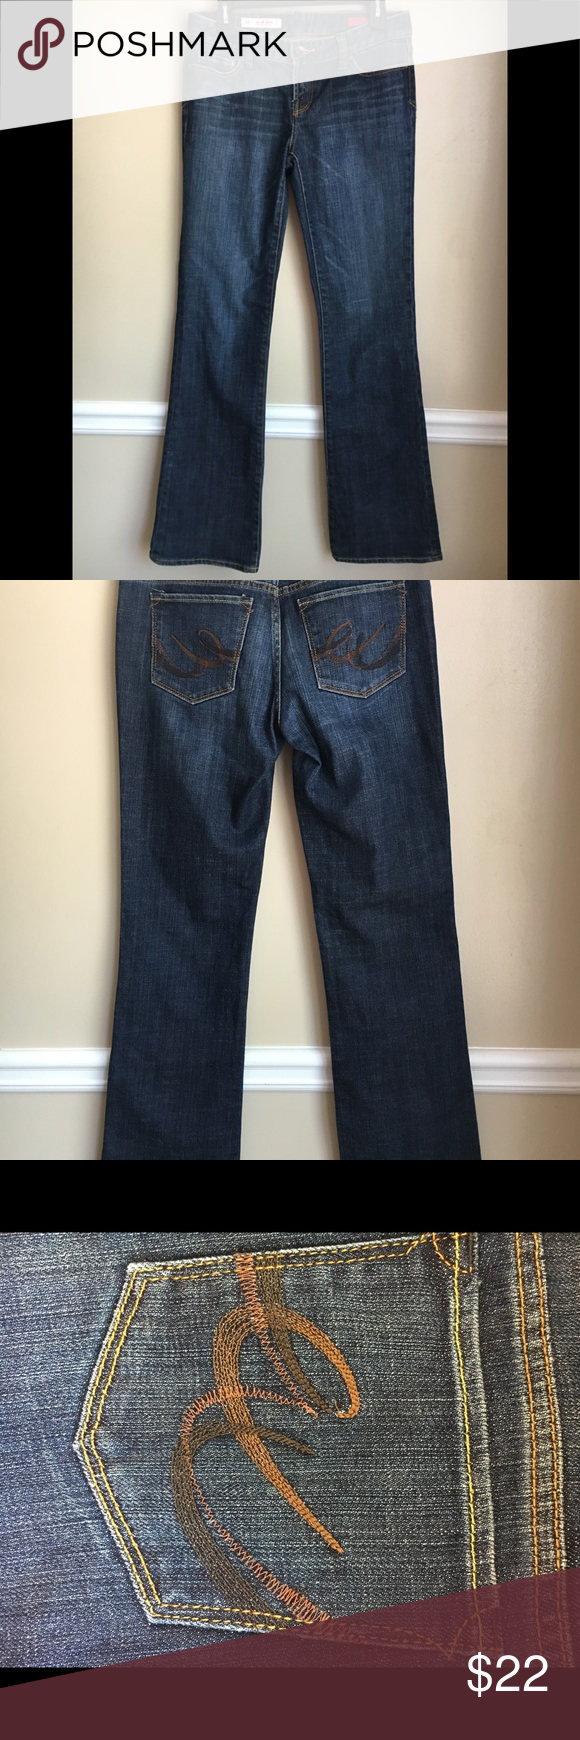 Express X2 jeans X2 Express jeans size 6 long. Slim. Low Rise. Bootcut. In great condition. X2 Express Jeans Boot Cut